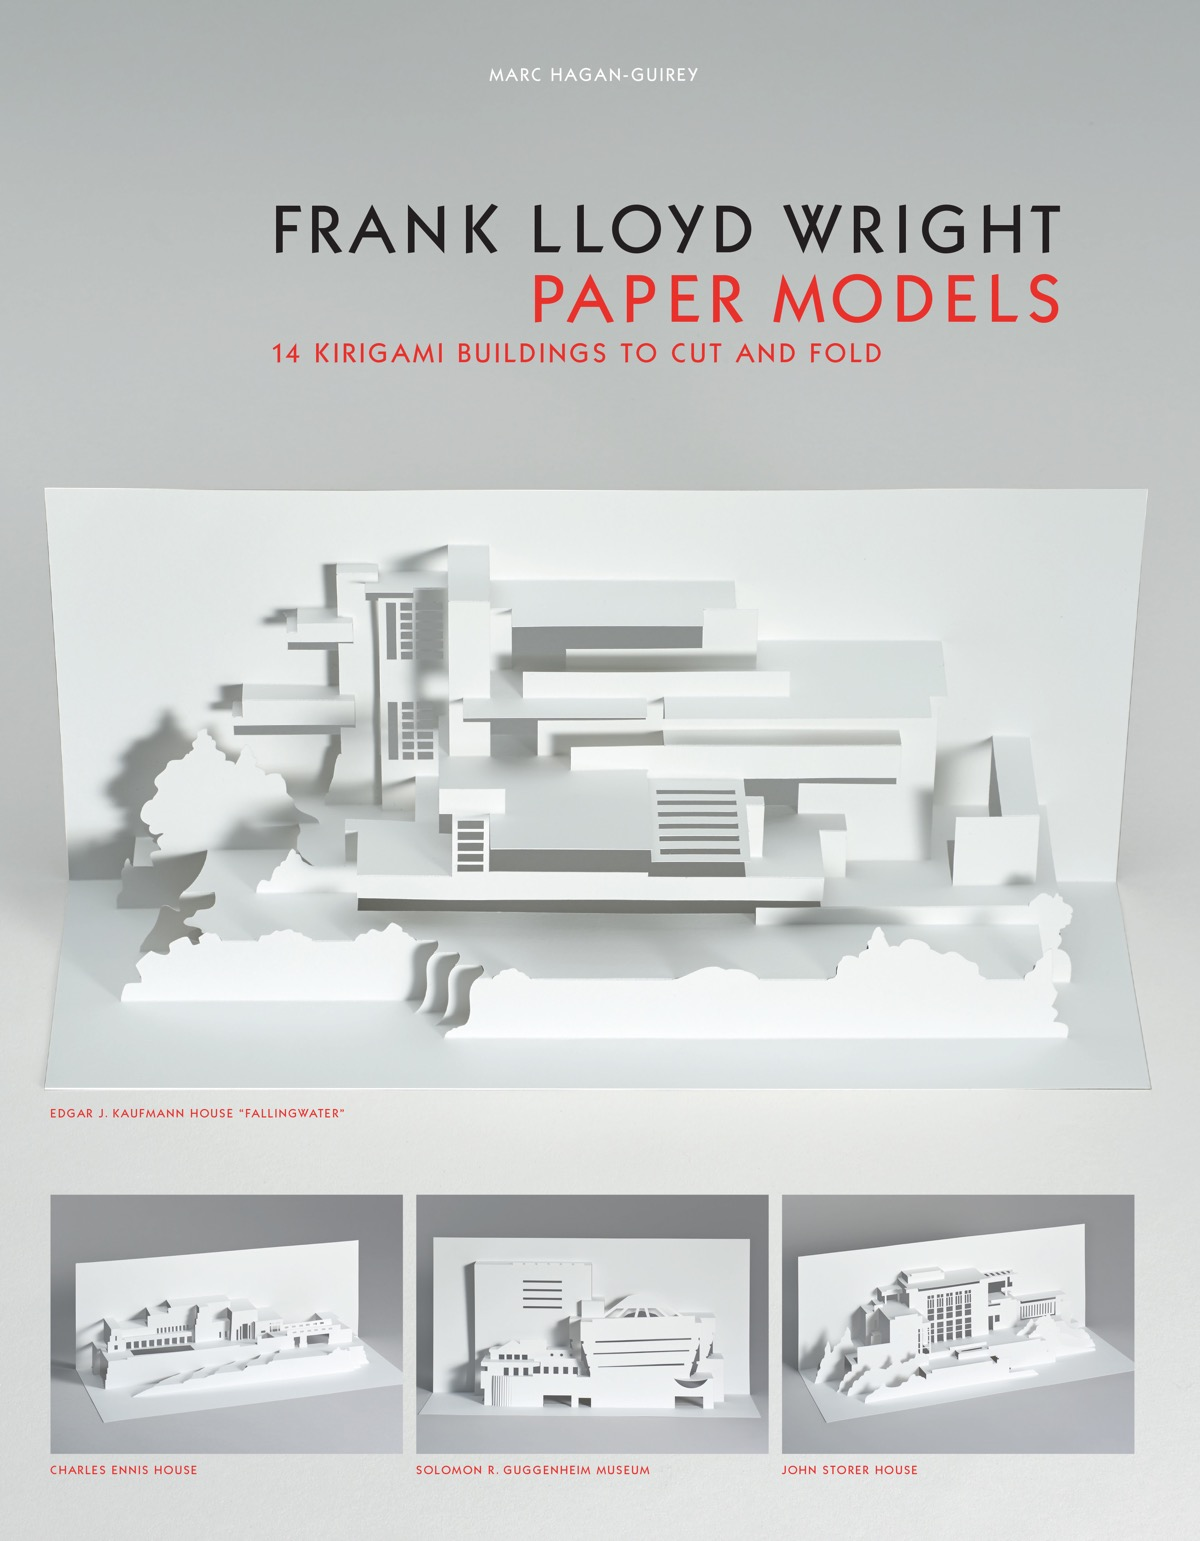 Frank Lloyd Wright Model Kits Product Of The Week Frank Lloyd Wright Paper Models